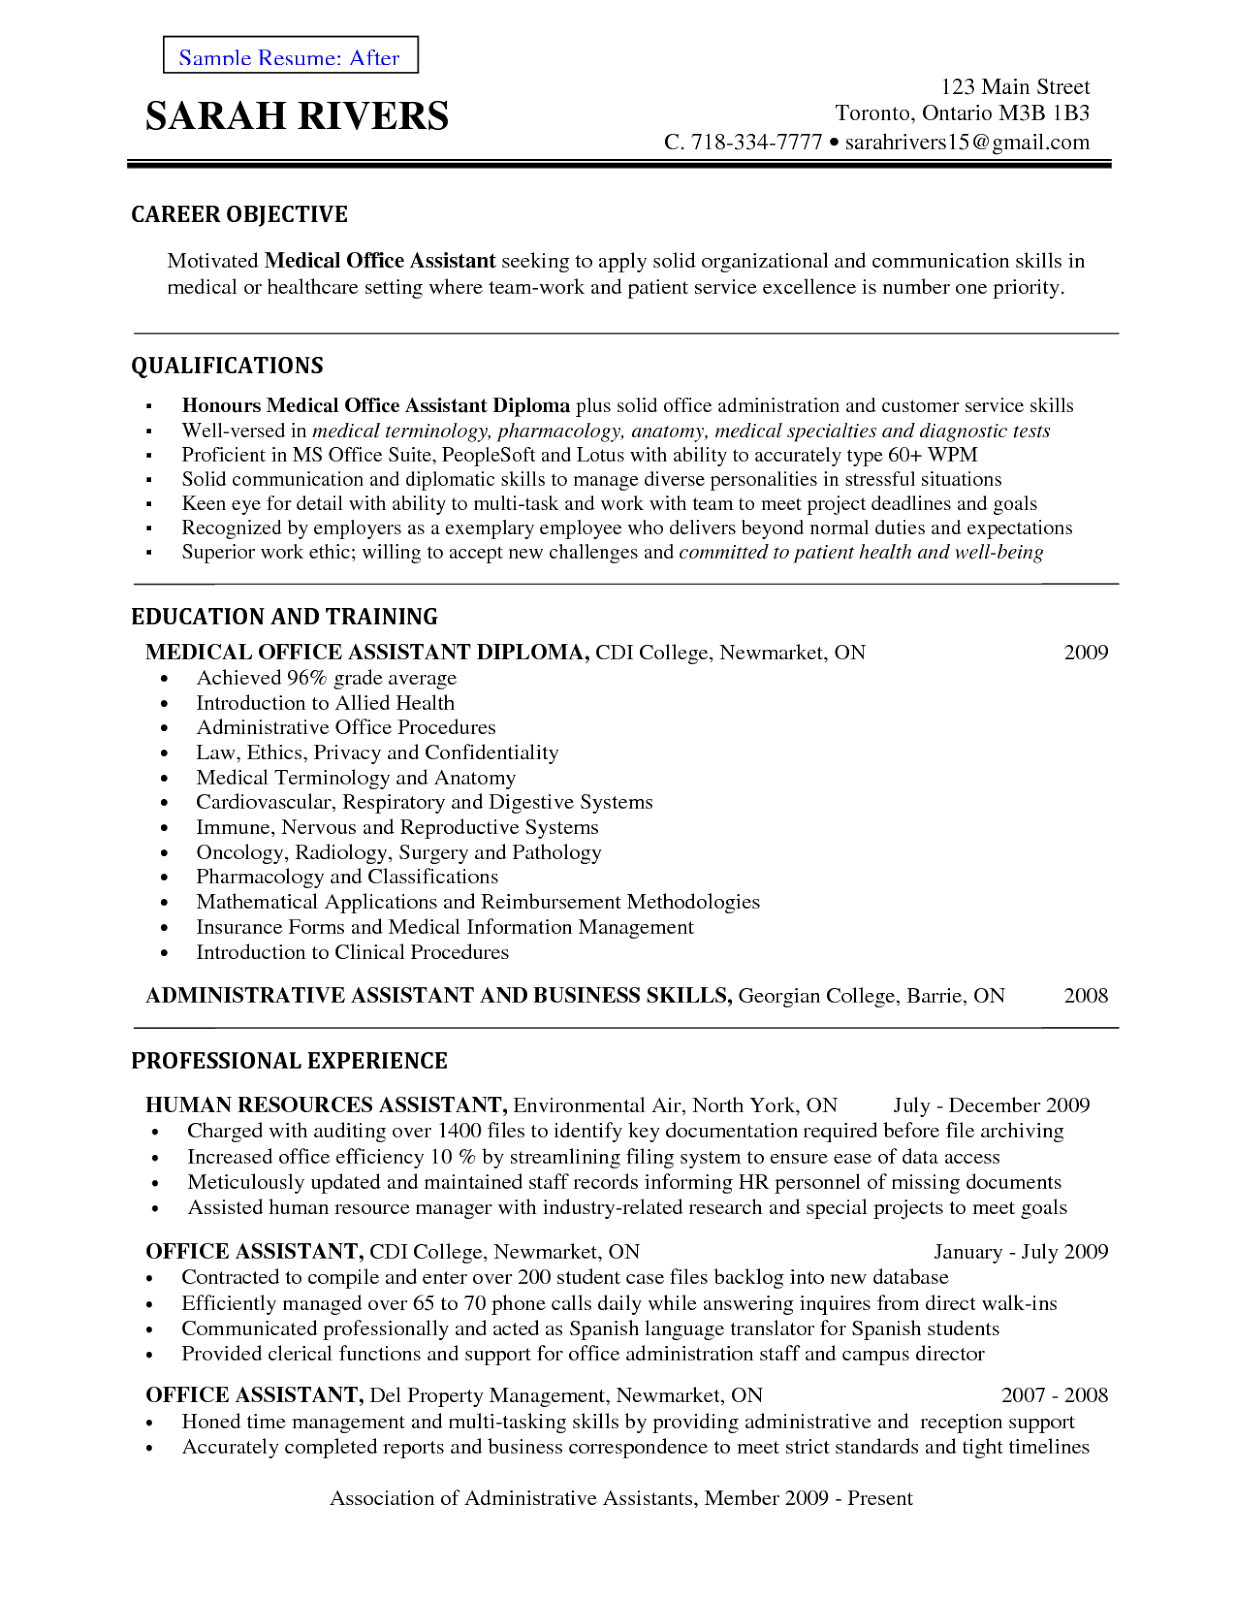 resume cover letter example - Professional Objective In Resume